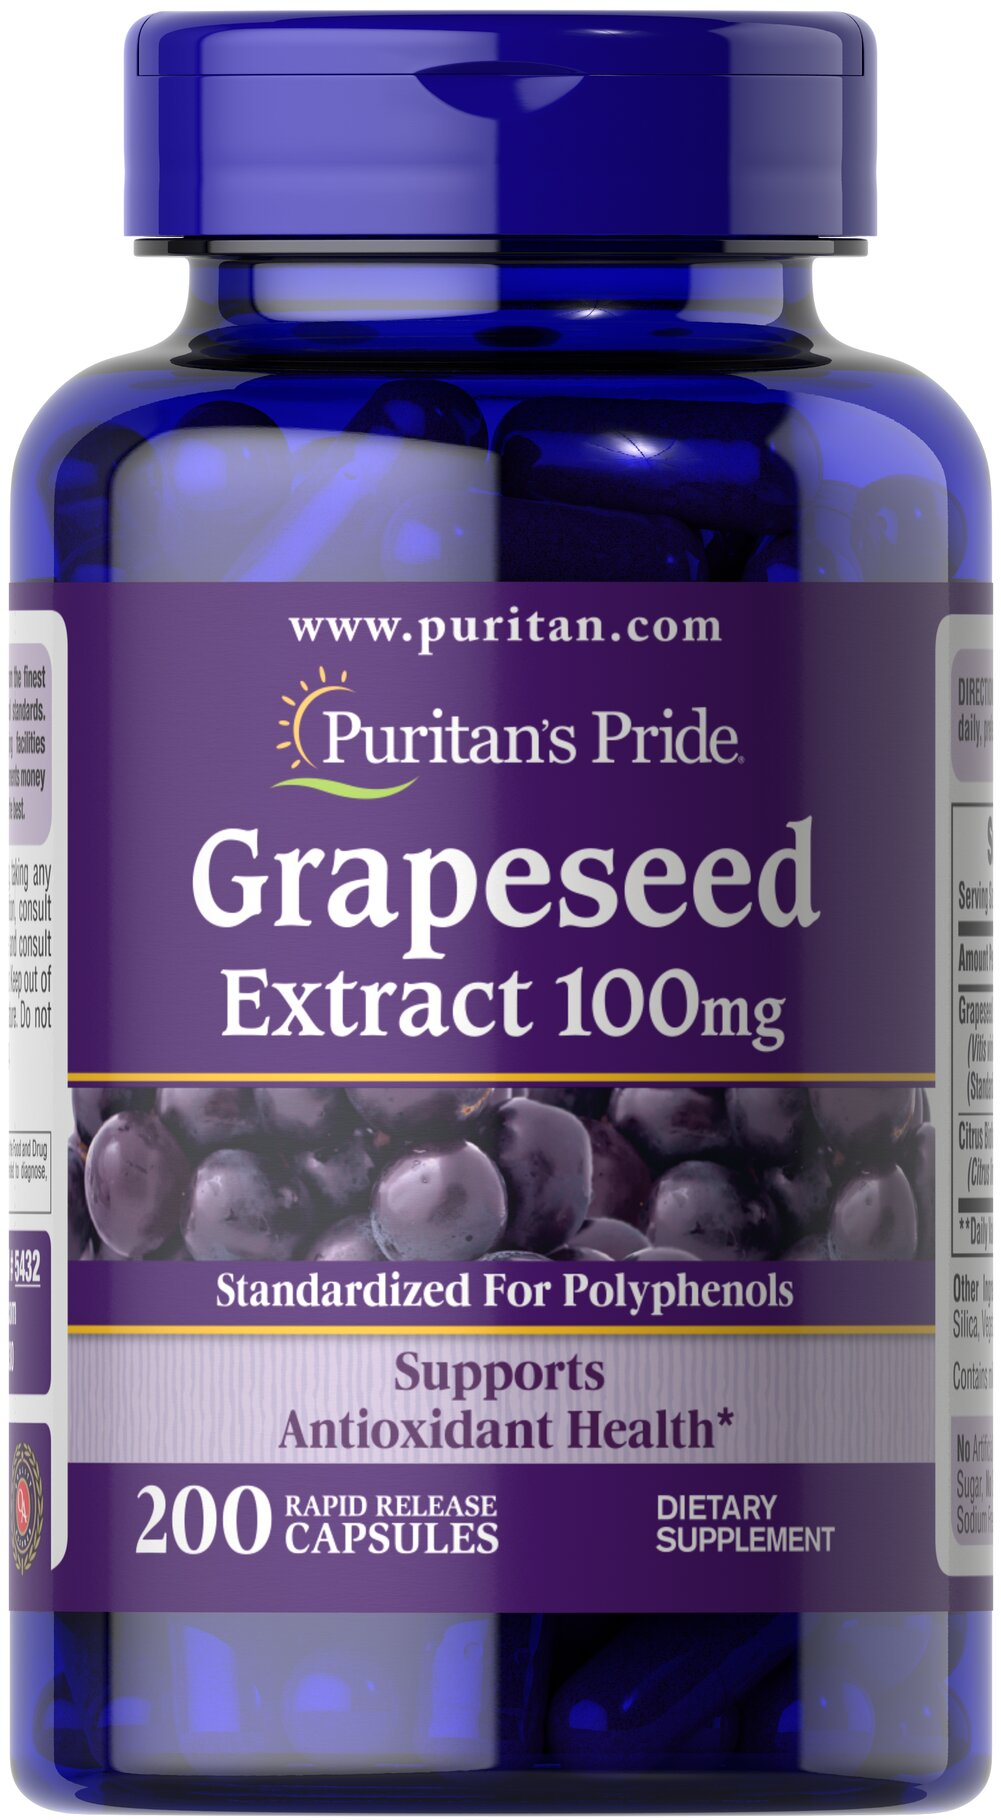 Grapeseed Extract 100 mg <p><strong>Grapeseed Extract</strong> helps maintain antioxidant health.** It contains oligomeric proanthocyanidins (OPCs), which are naturally occurring bioflavonoids. Free of yeast, wheat, sugar, preservatives, soy,  gluten, fish, artificial color, artificial flavor and sodium (less than 5 mg per serving). Standardized to contain 50% Polyphenols. Adults can take one capsule one or two times daily.</p> 200 Capsules 100 mg $22.74